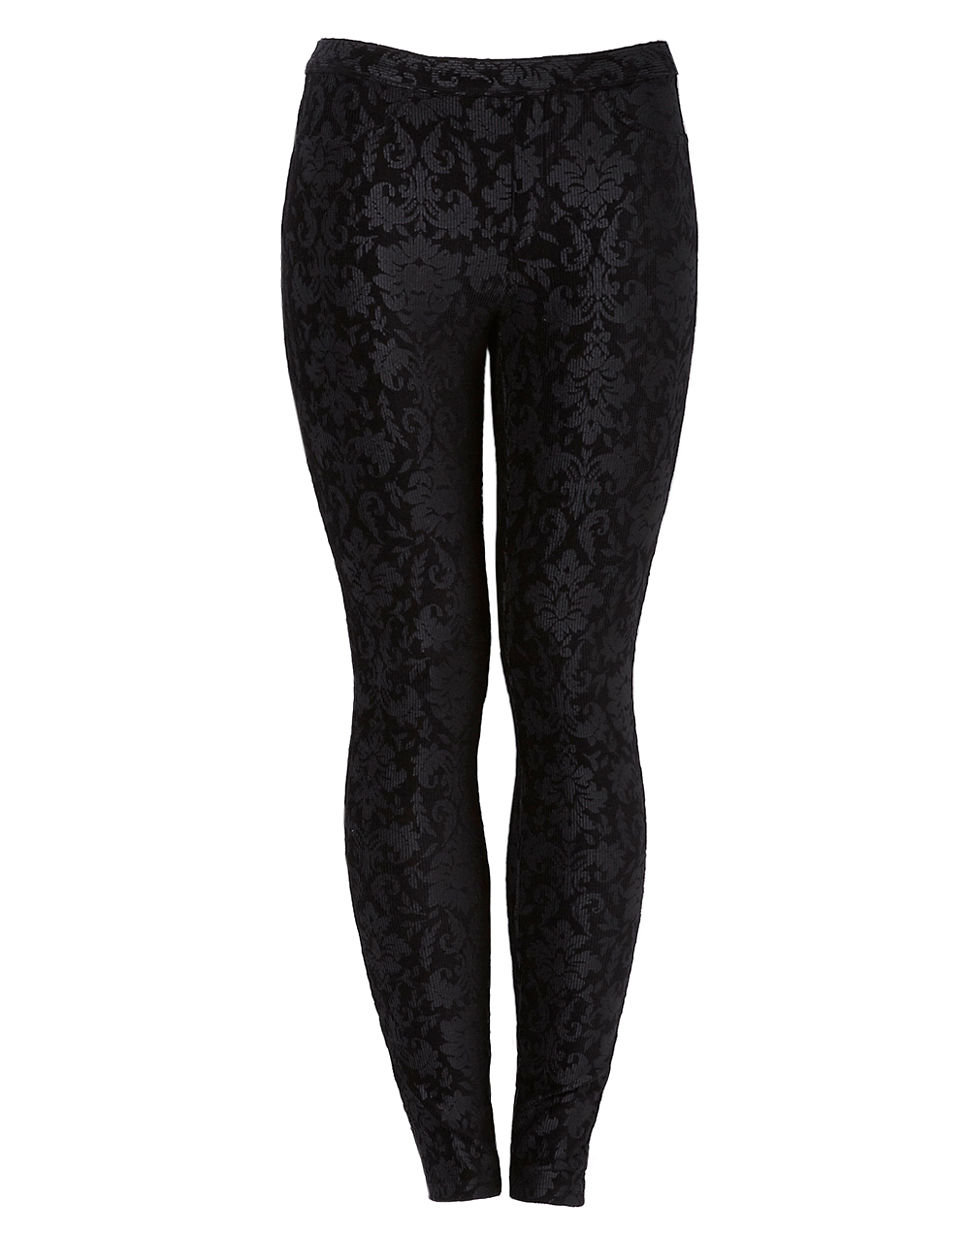 Hue Tapestry Corduroy Legging black XSmall/Small